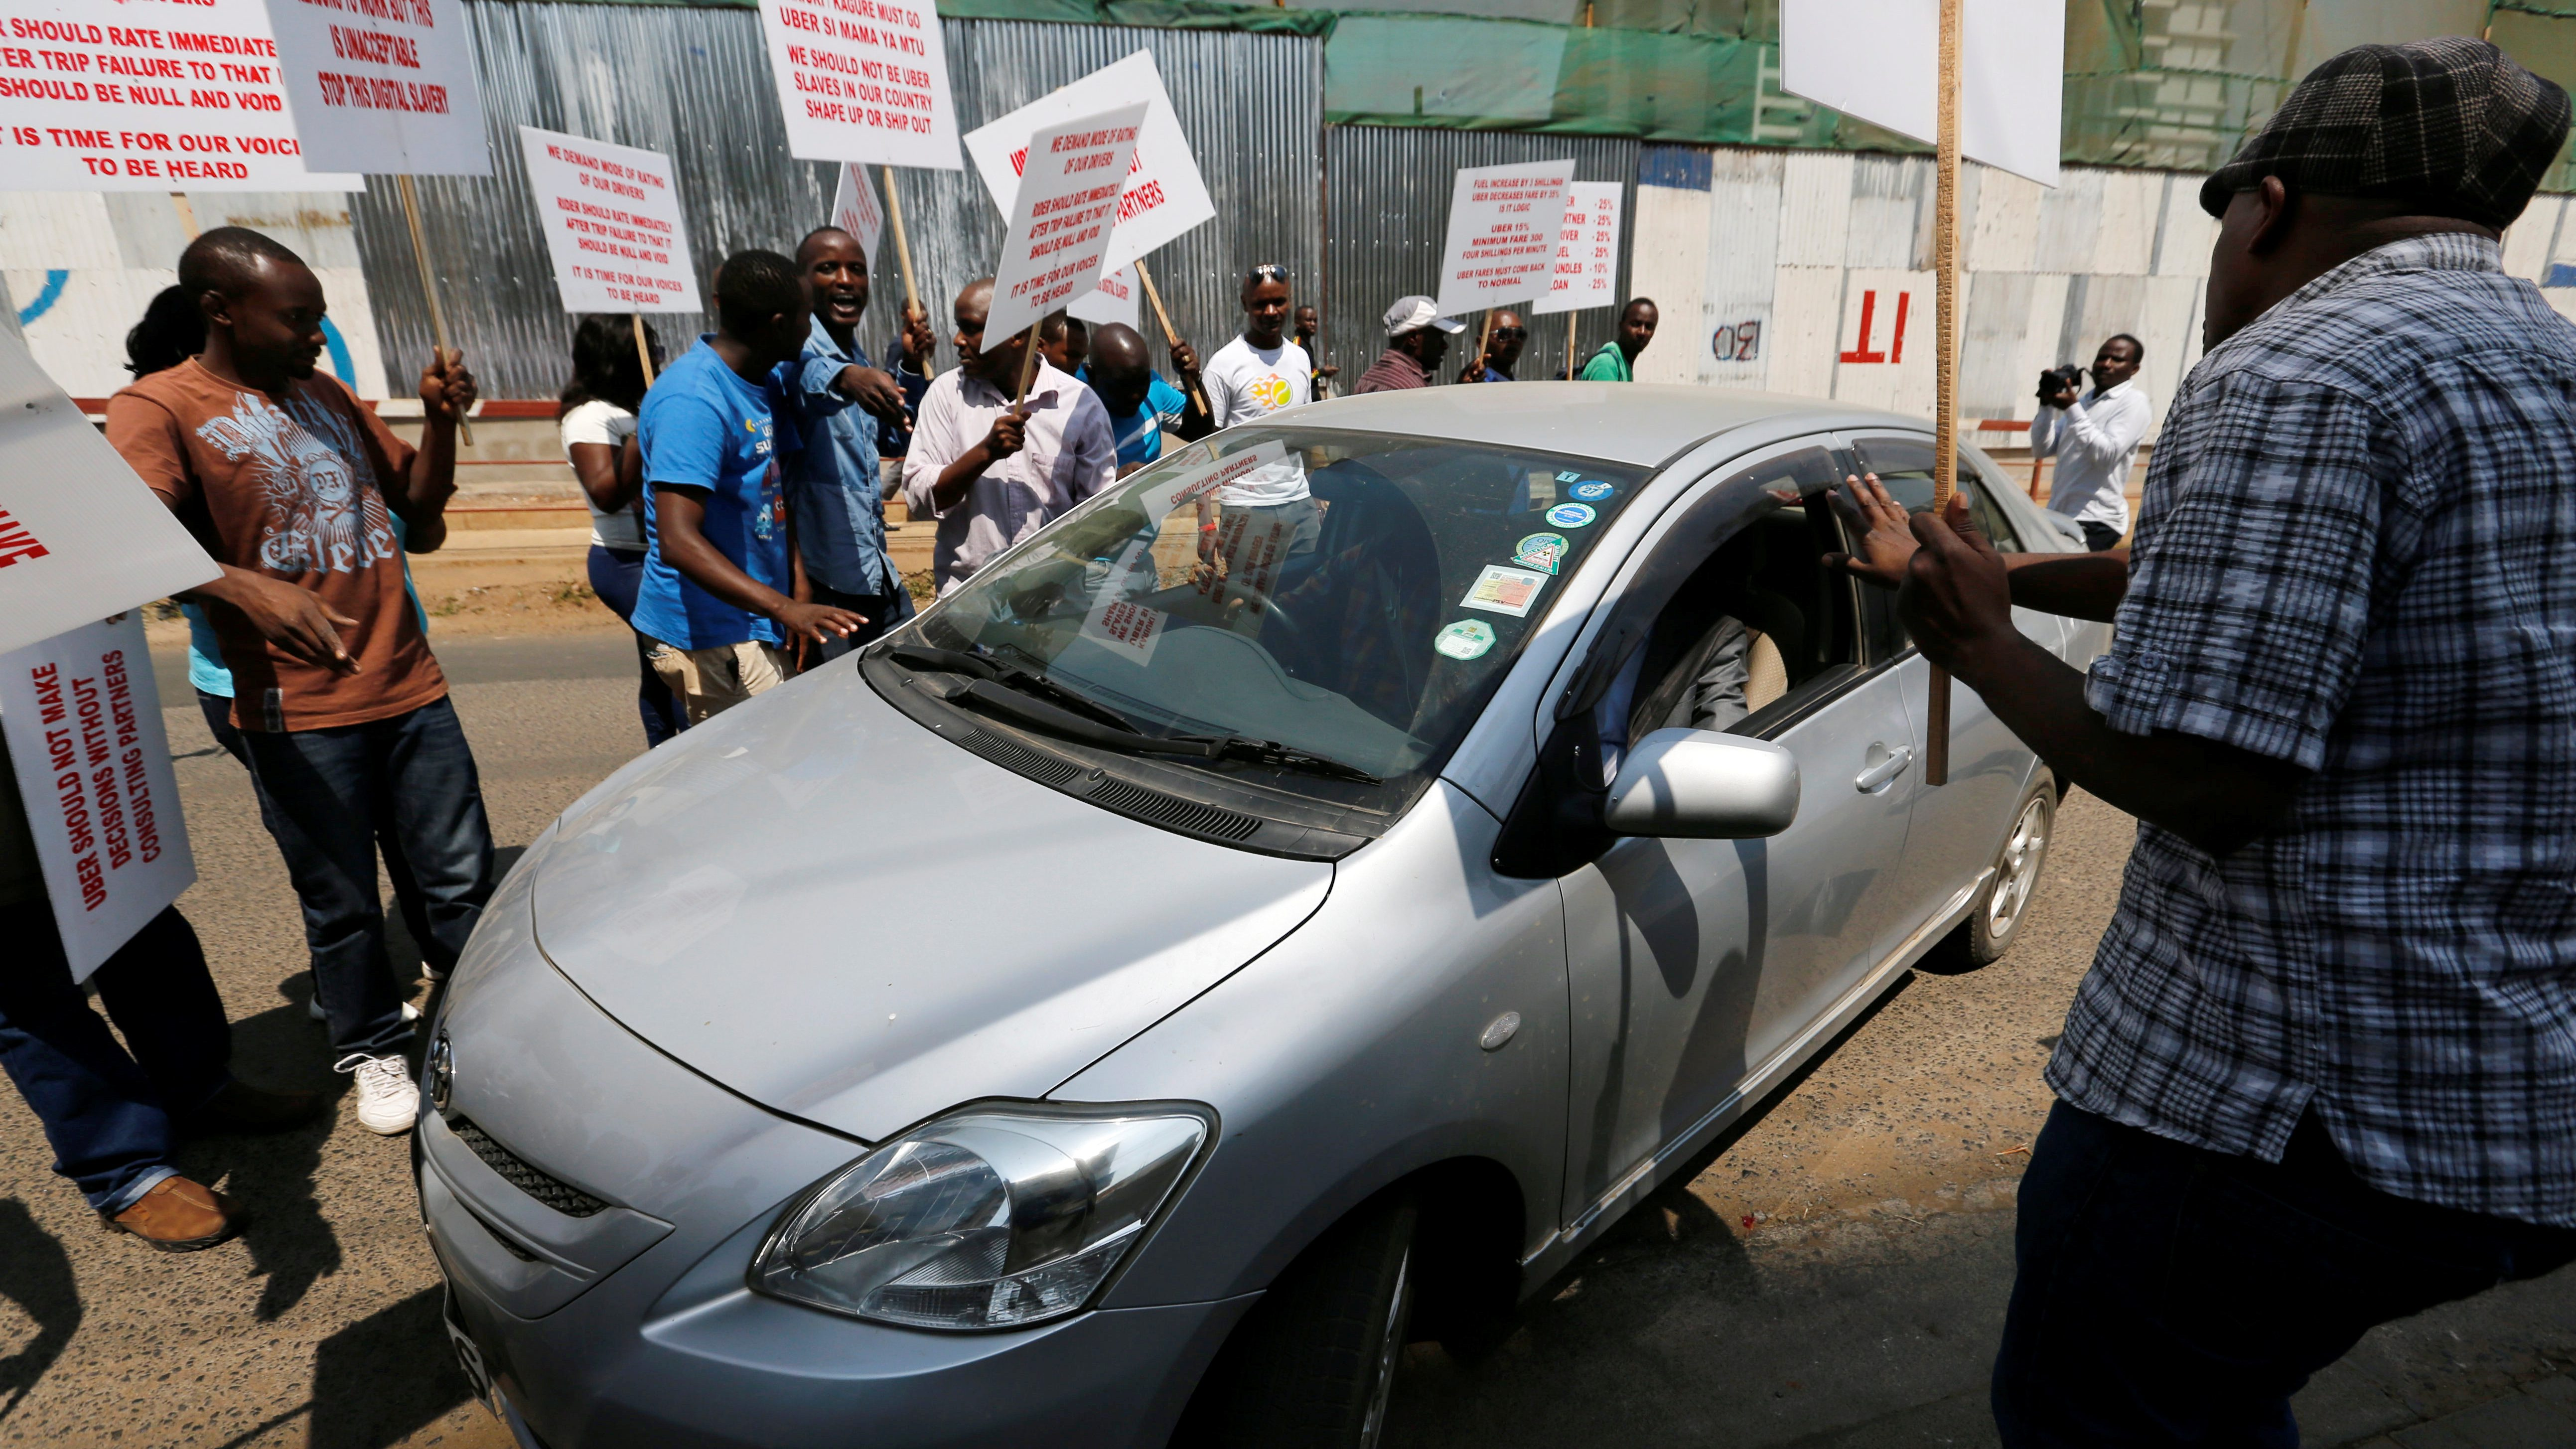 Kenyan taxi drivers signed up to ride-hailing service Uber attempt to eject a passenger from one of the Uber operating taxis during a strike in Kenya's capital Nairobi